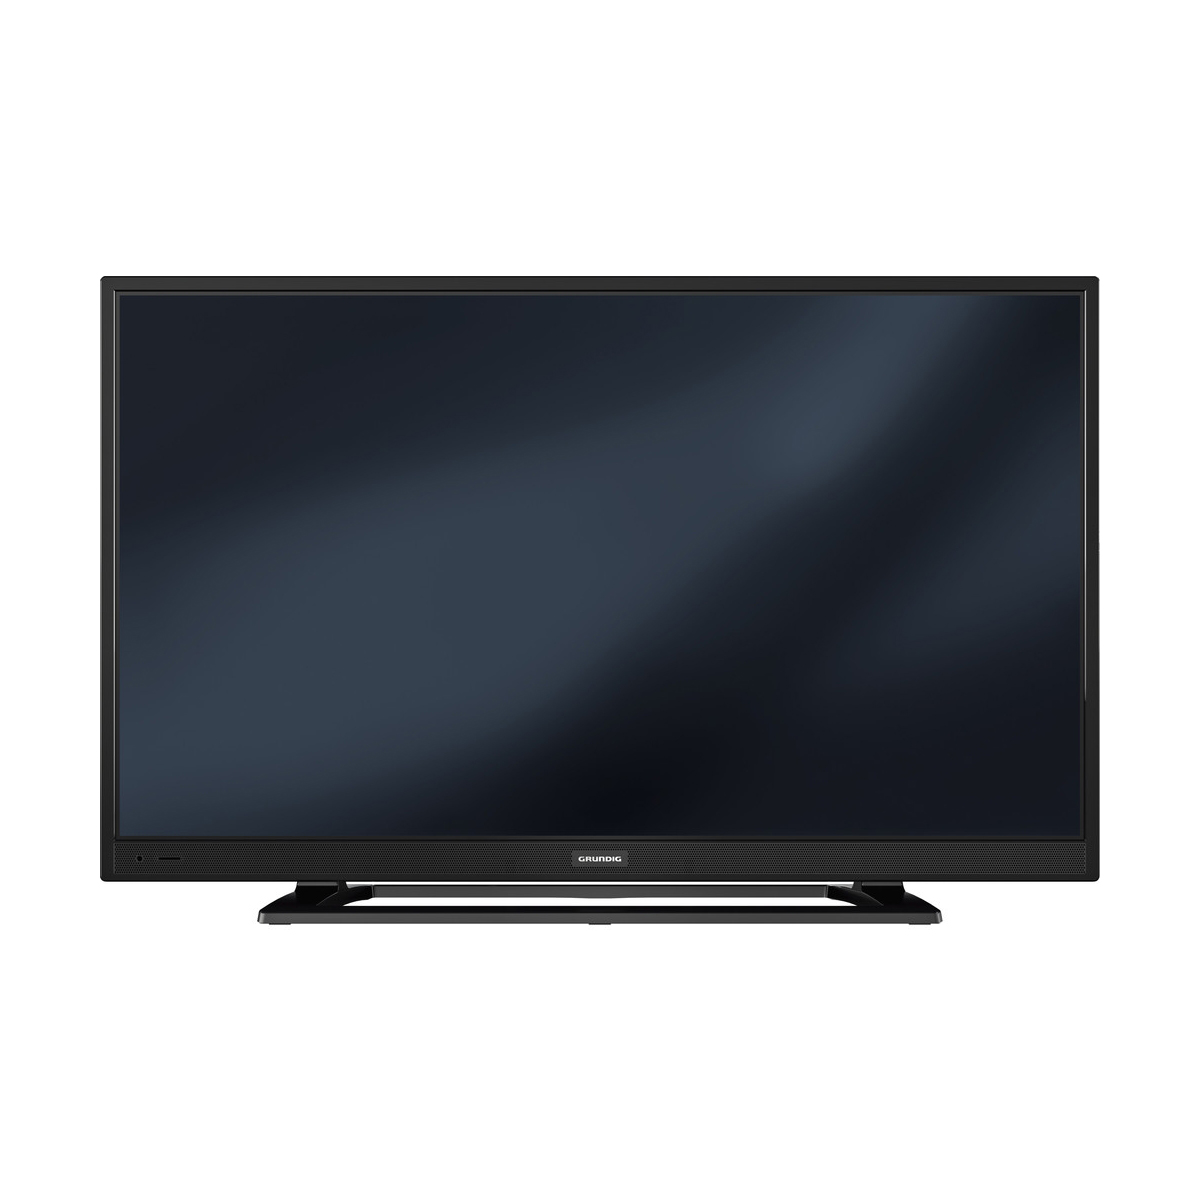 "28"" LED TV with STB"